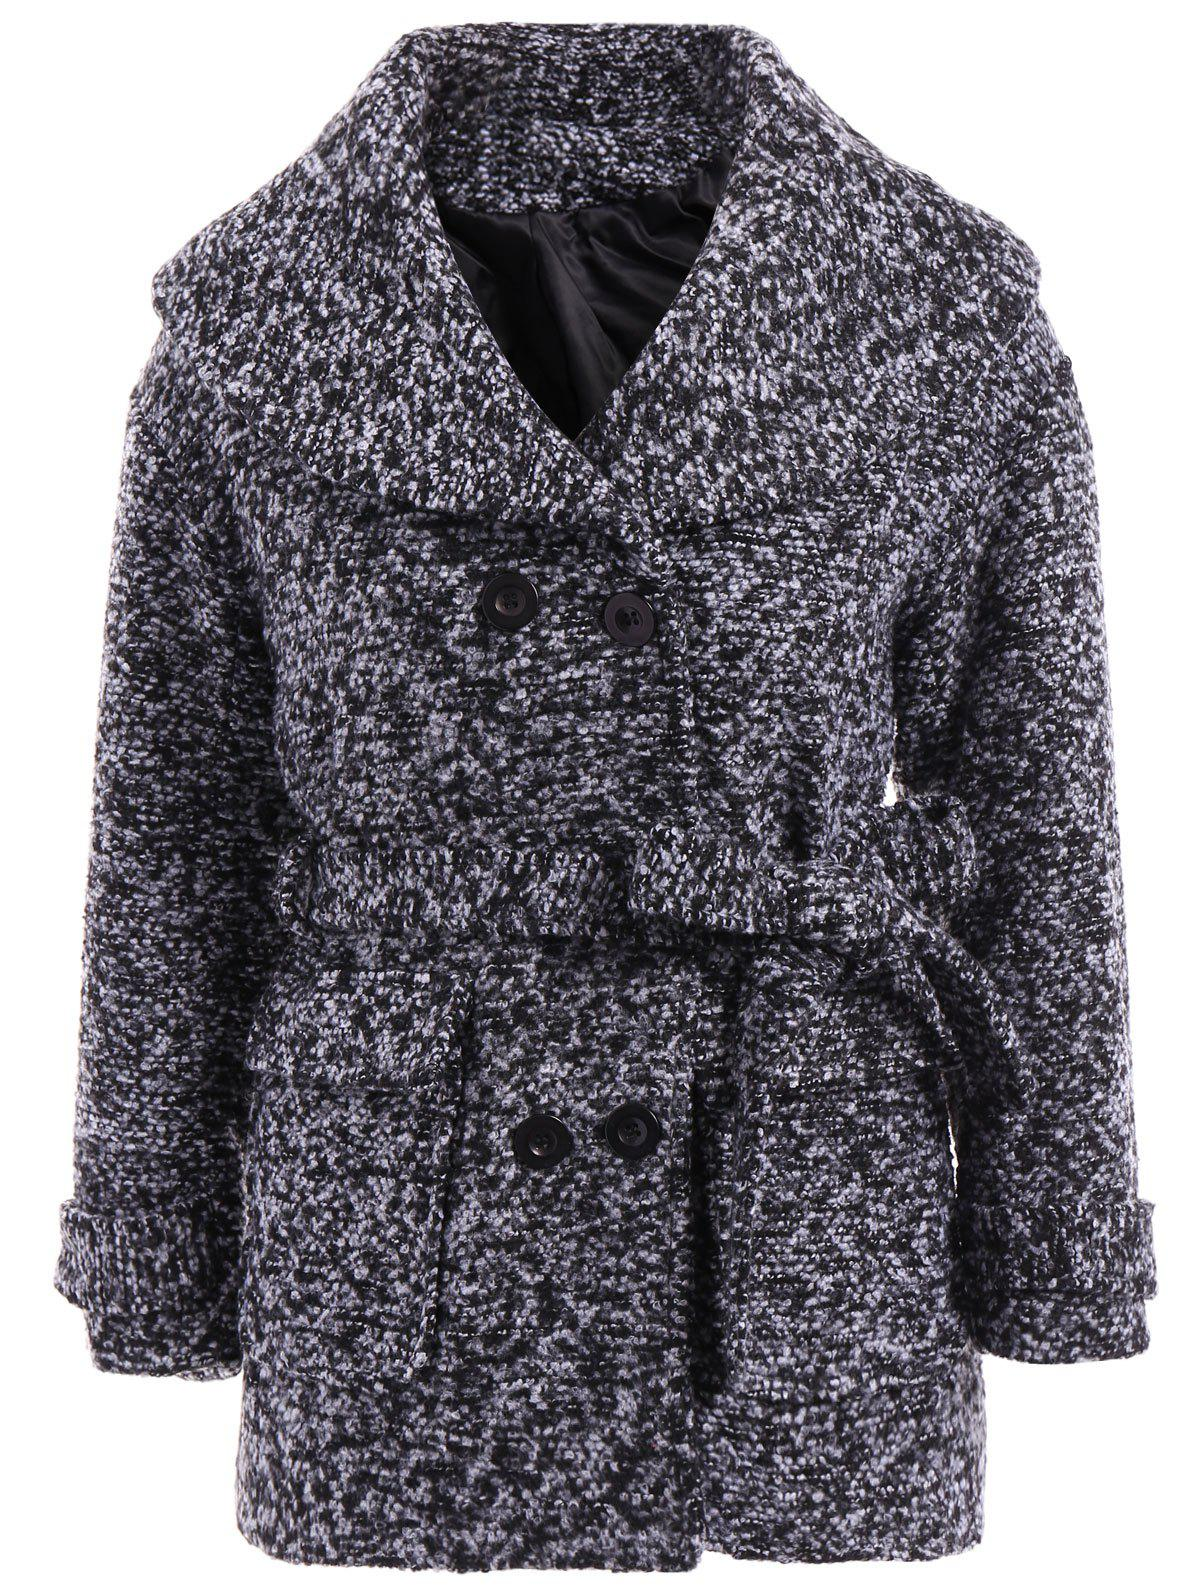 Casual Double Breasted Turn-Down Collar Long Sleeve Coat For Women - BLACK S